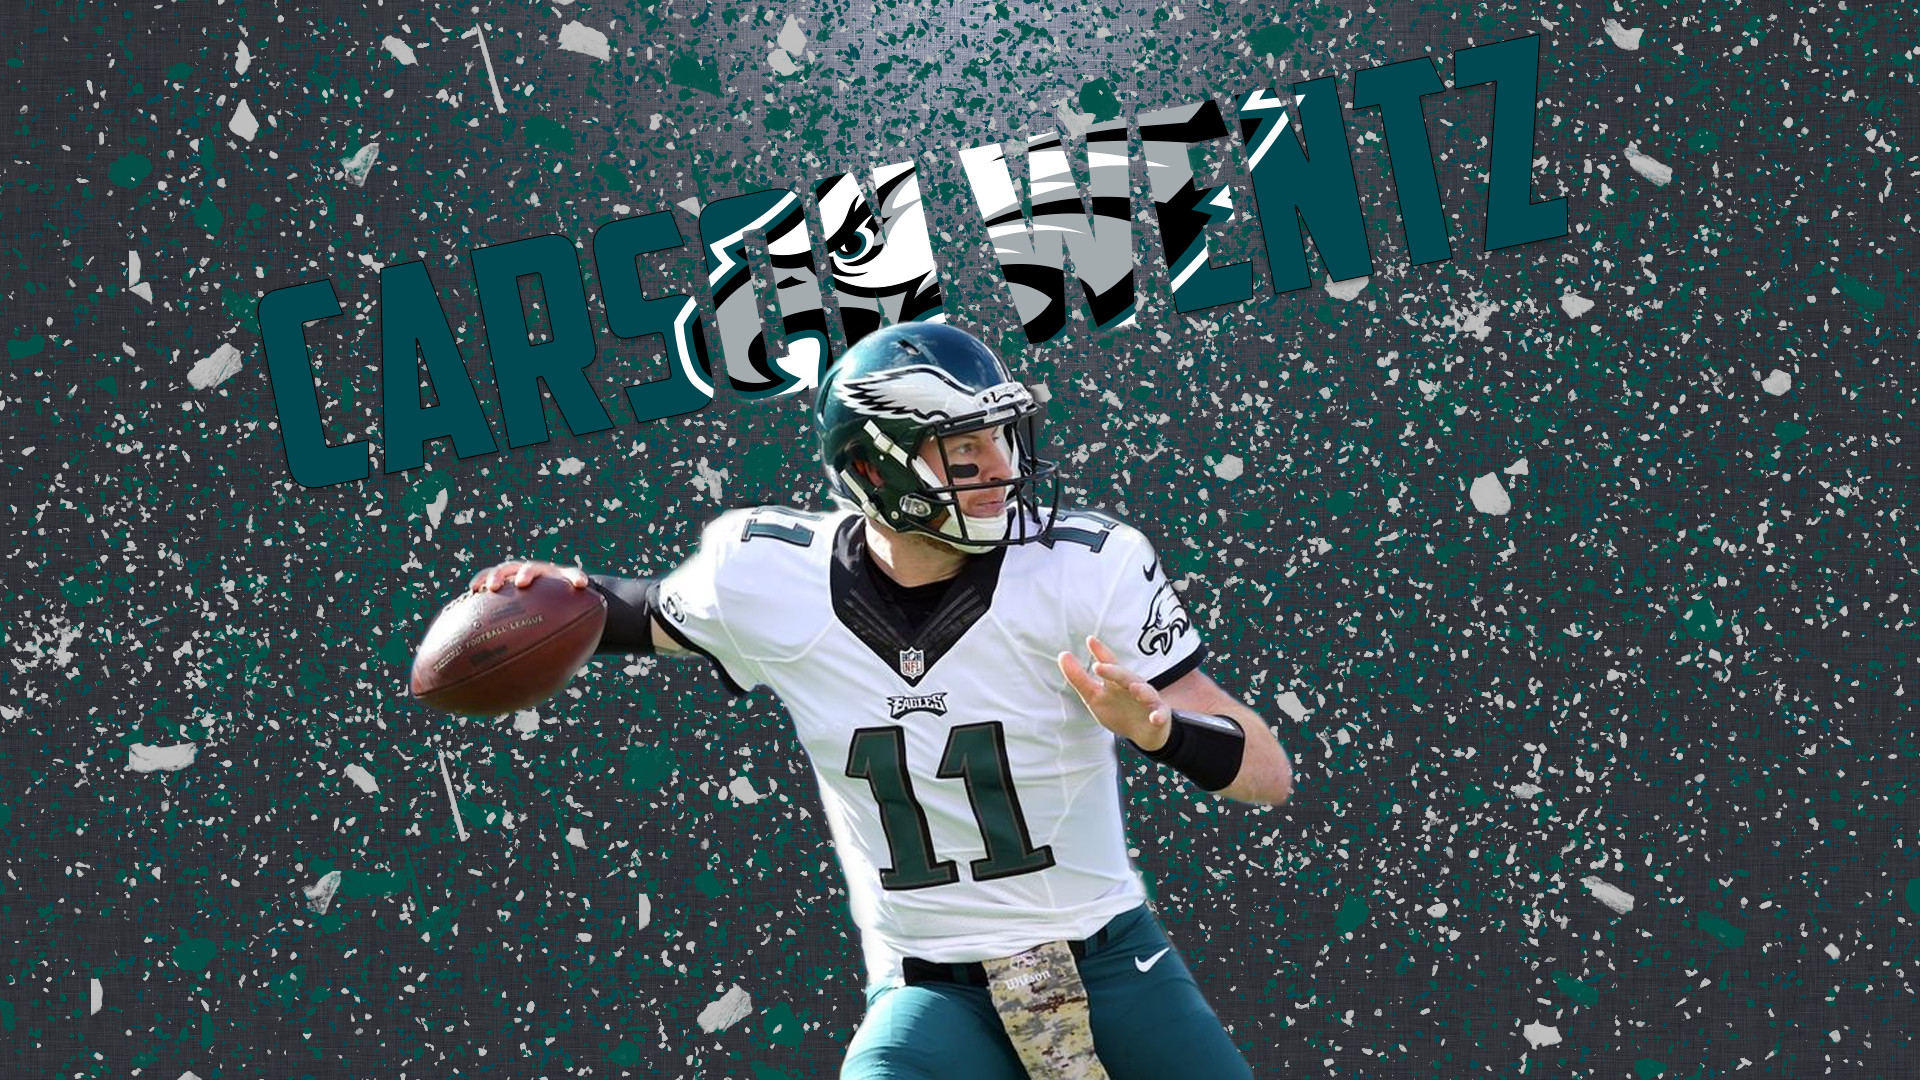 1920x1200 Philadelphia Eagles Computer Wallpapers, Desktop Backgrounds 1920×1200 Philadelphia Desktop Wallpapers (42 Wallpapers